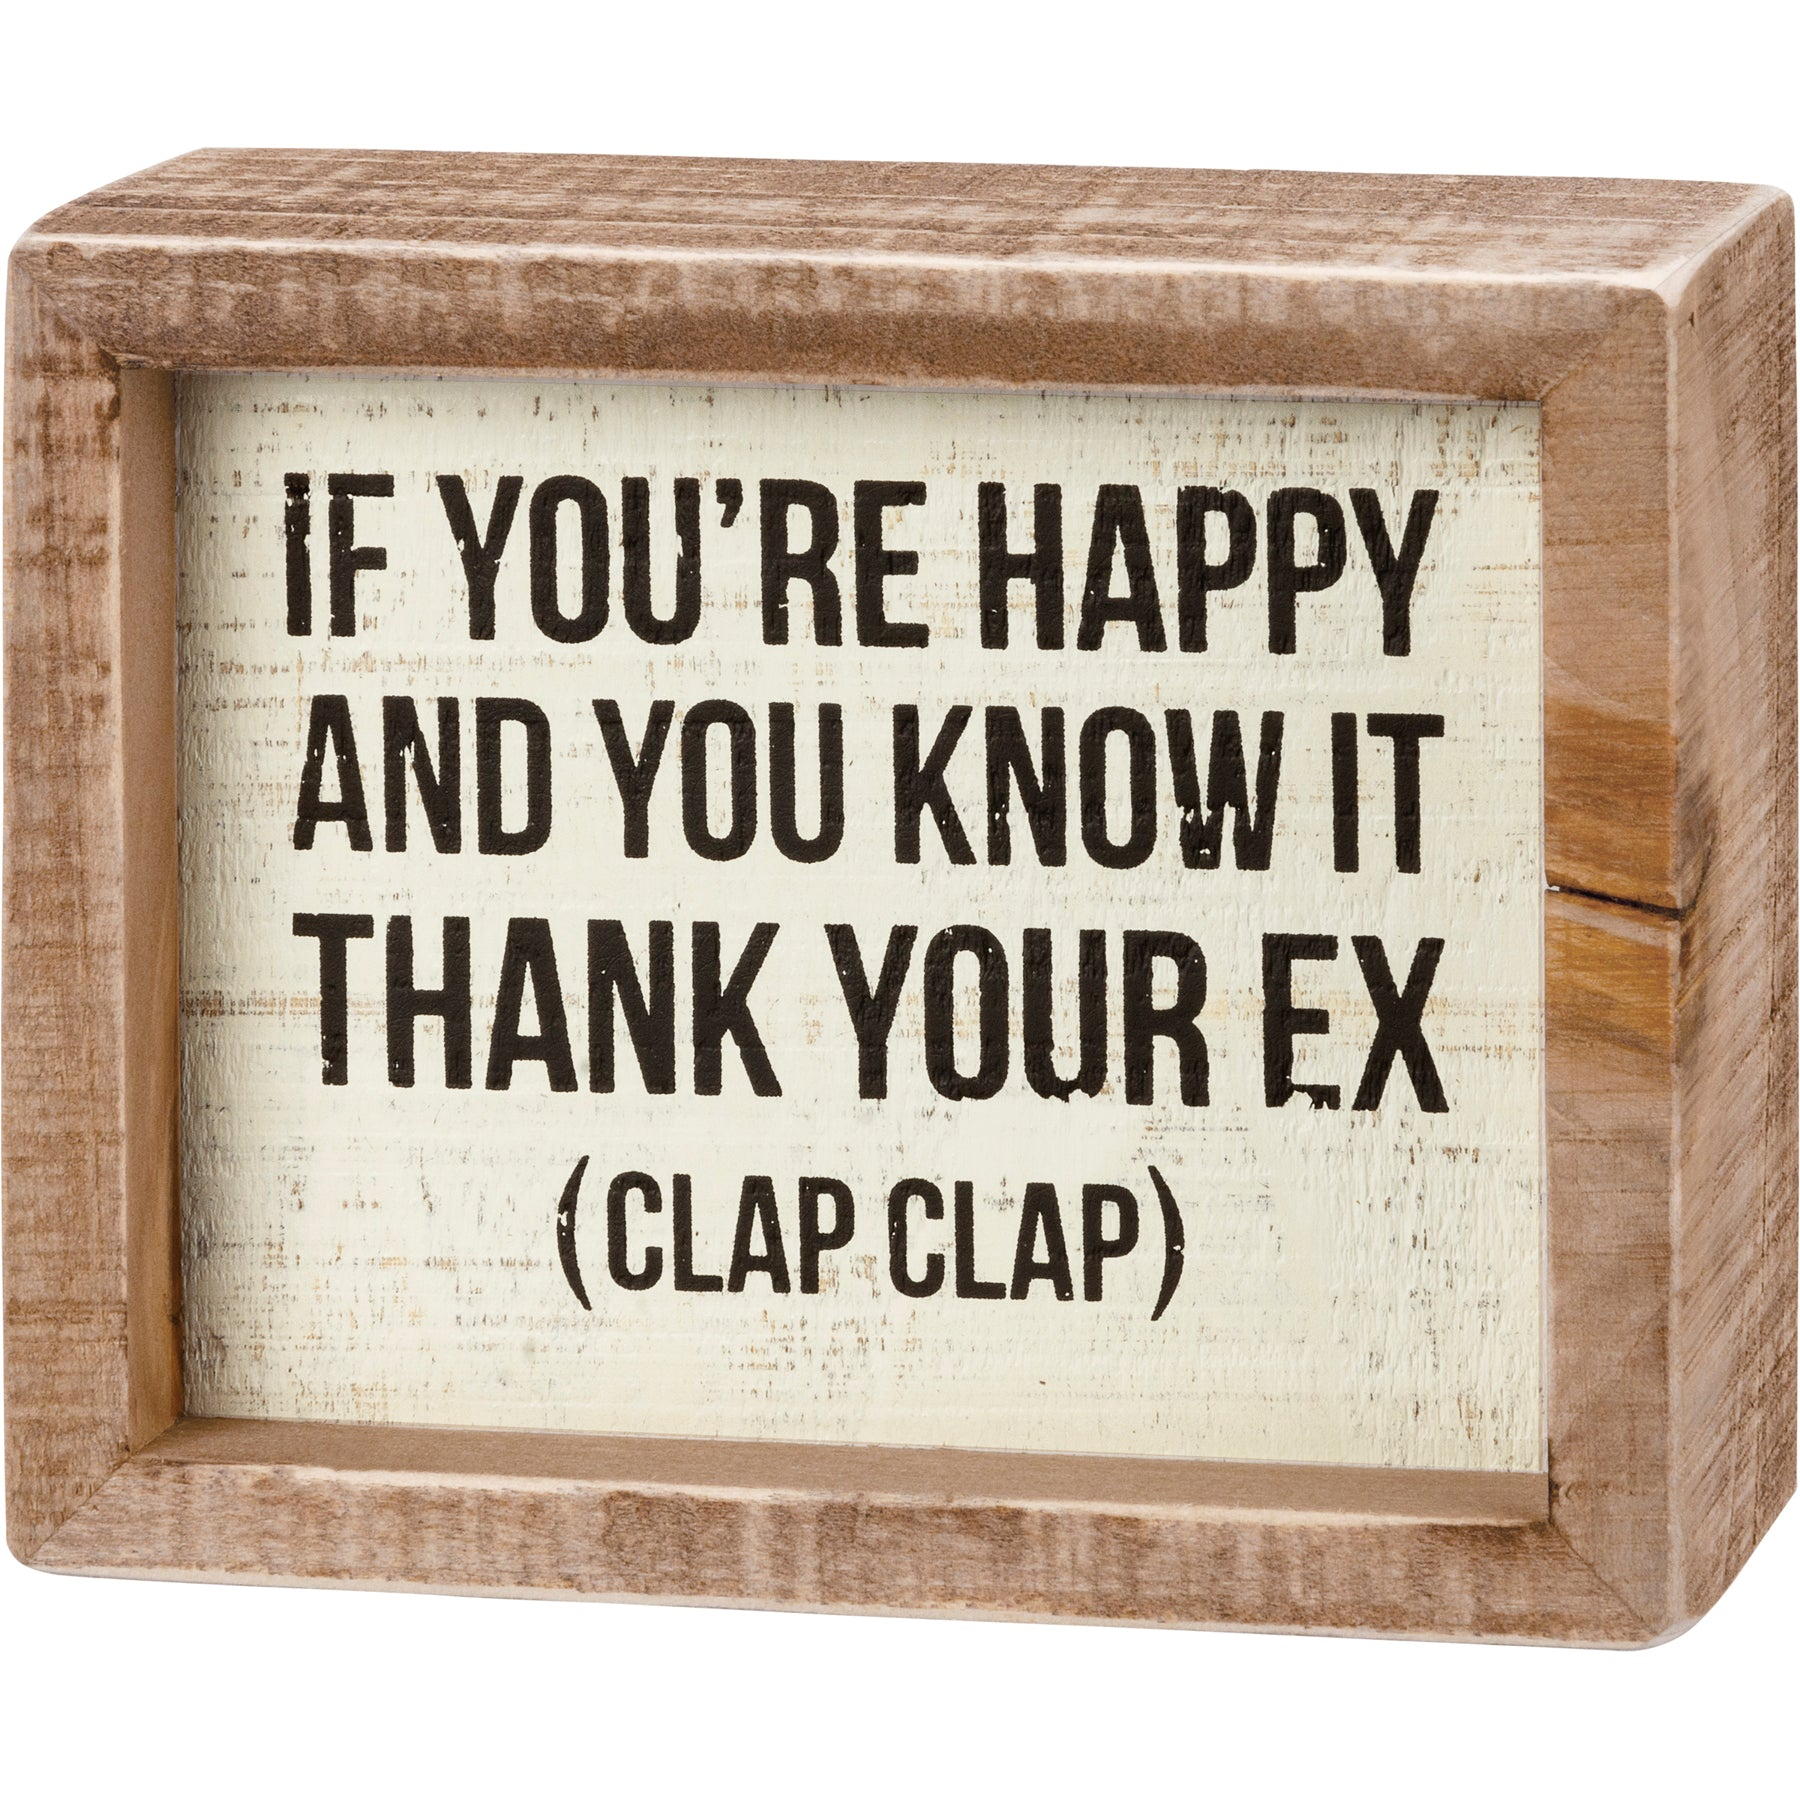 Inset Box Sign - If You're Happy And You Know It